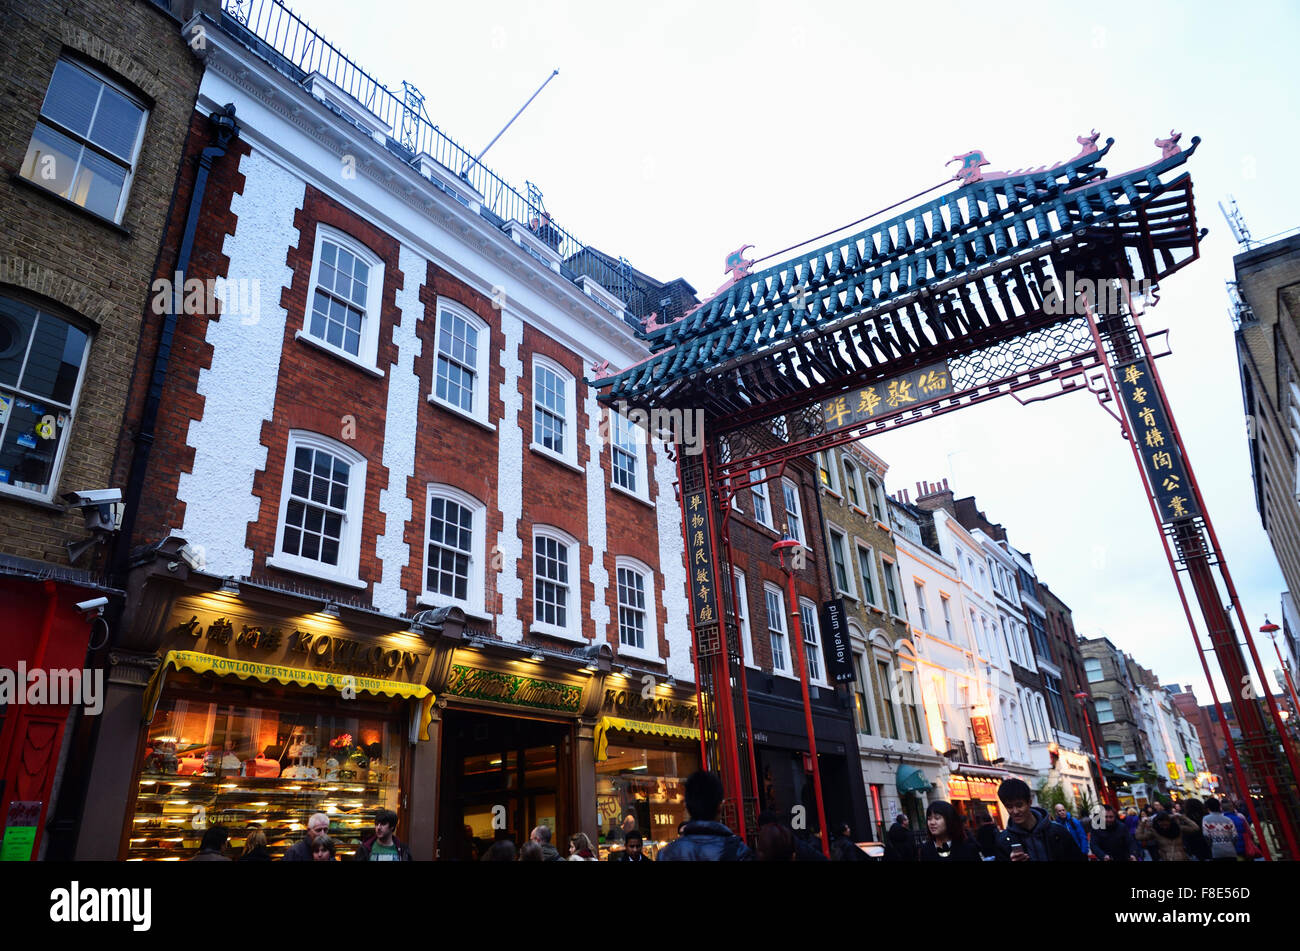 Chinatown in the Soho area of the City of Westminster in London, England, London, United Kingdom Stock Photo